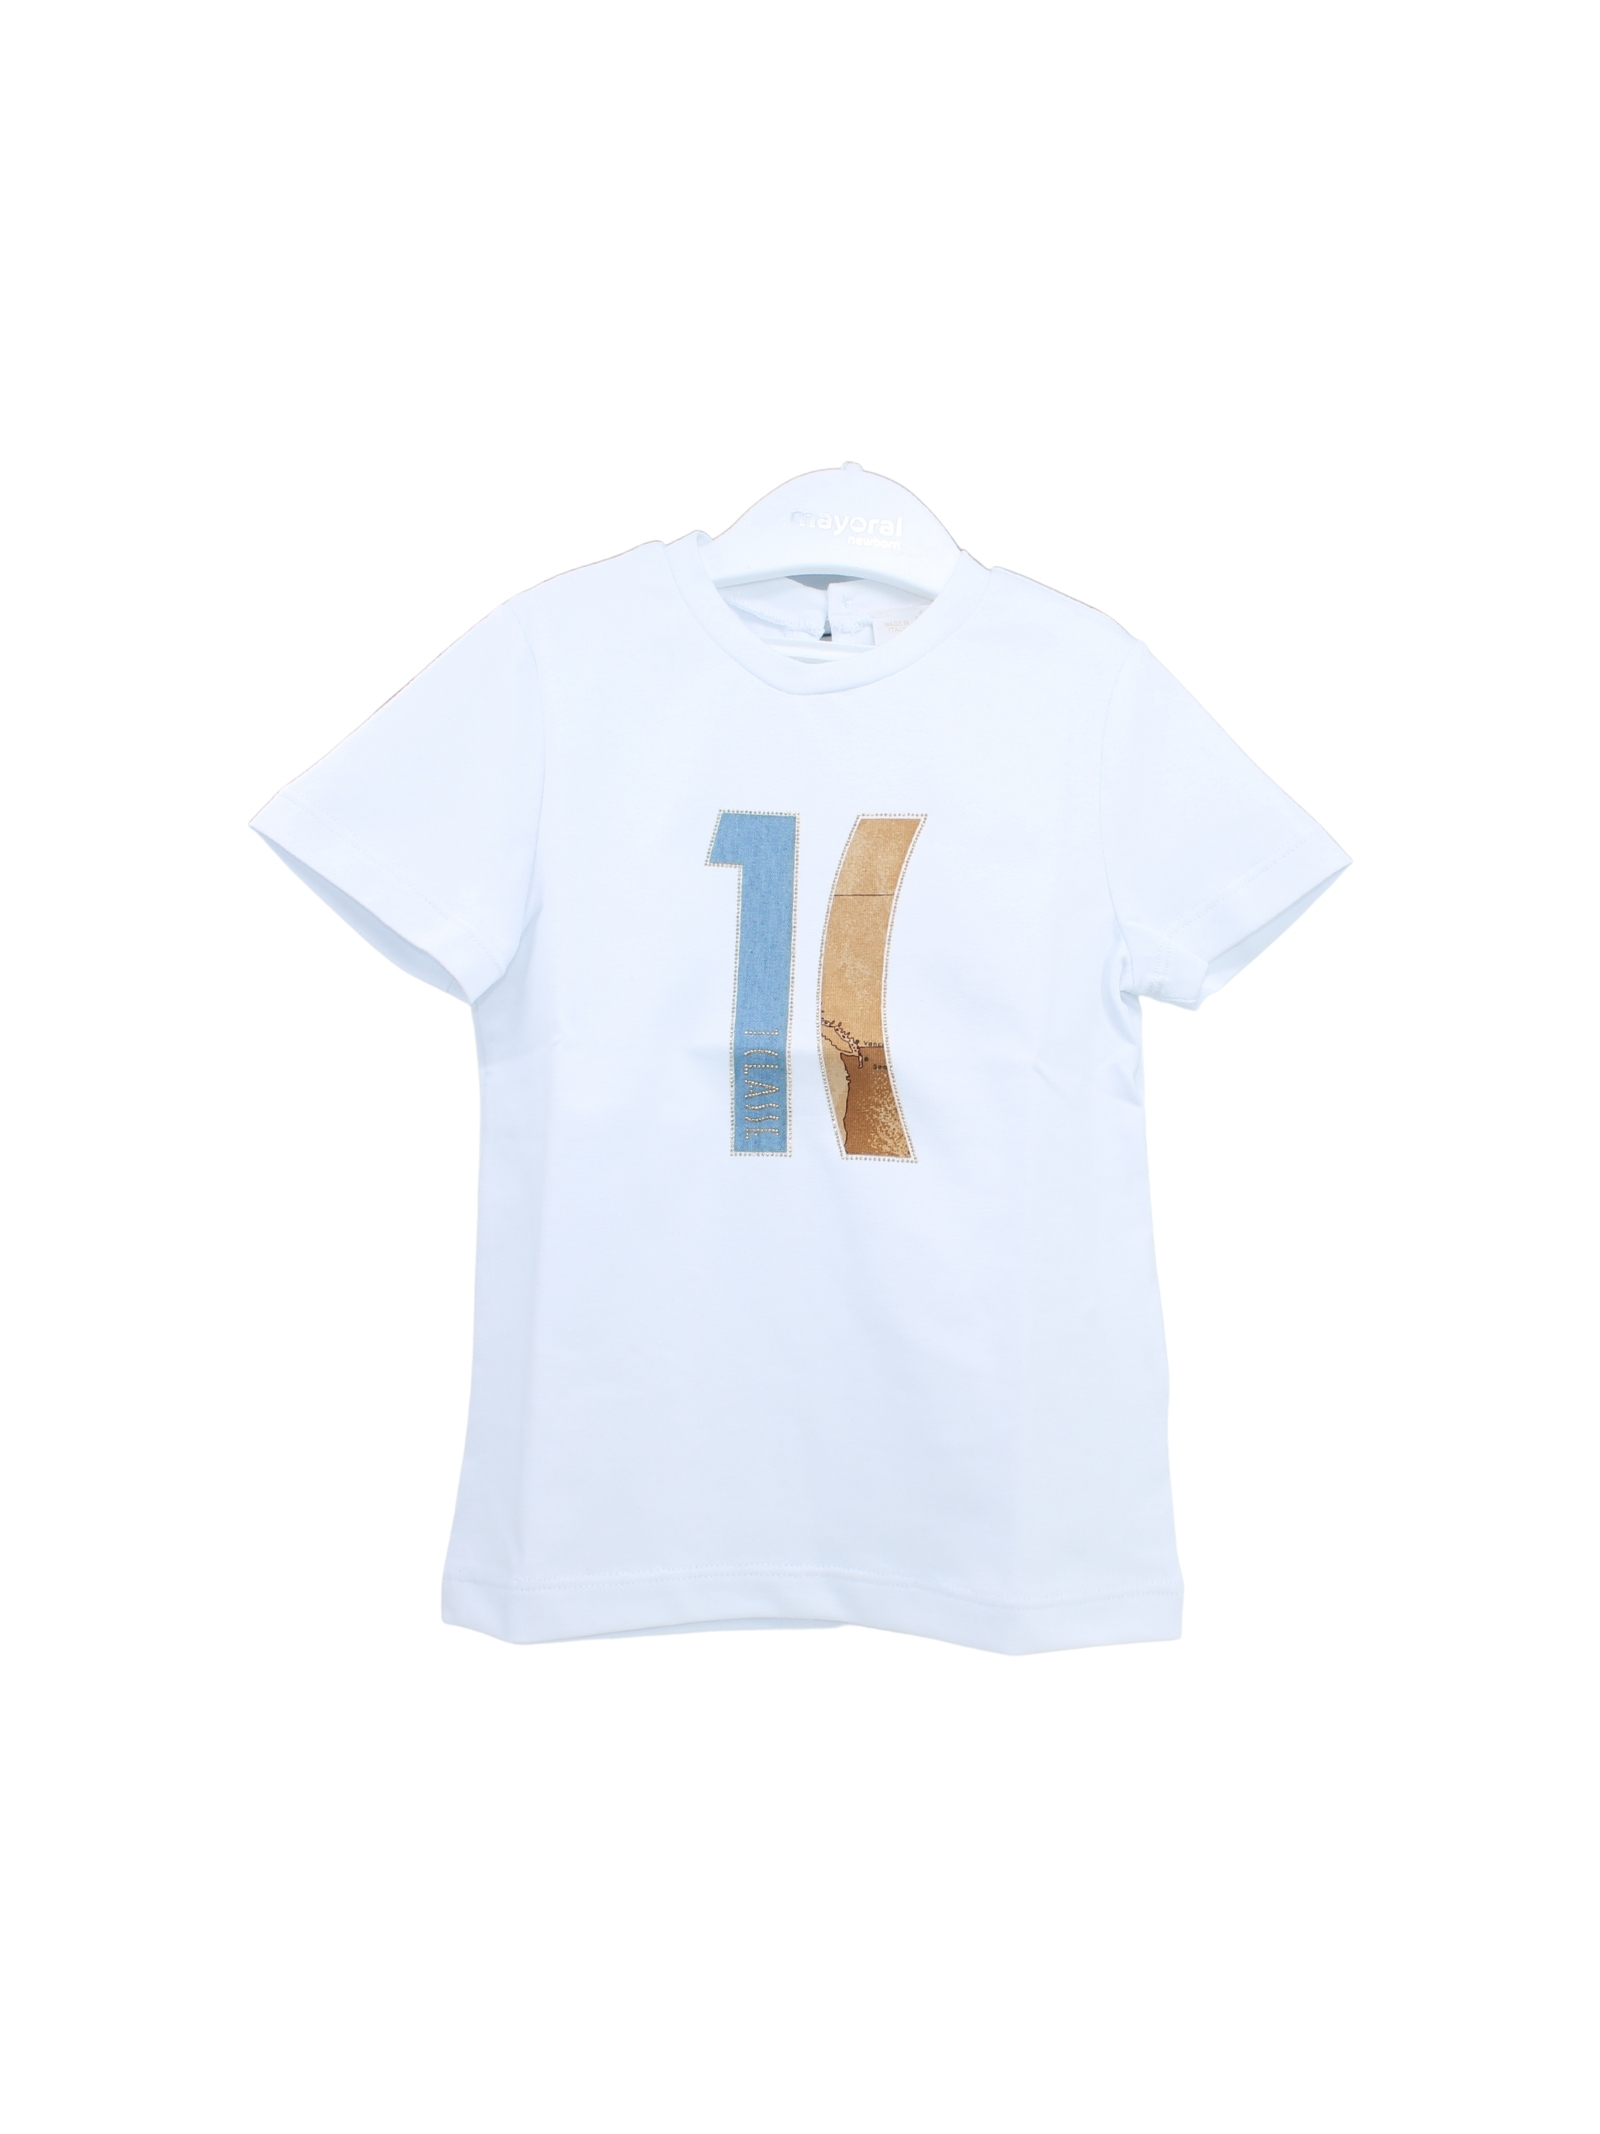 T-Shirt Bambino  Logo ALVIERO MARTINI 1° CLASSE JUNIOR | T-shirt | 2566M0499WHITE